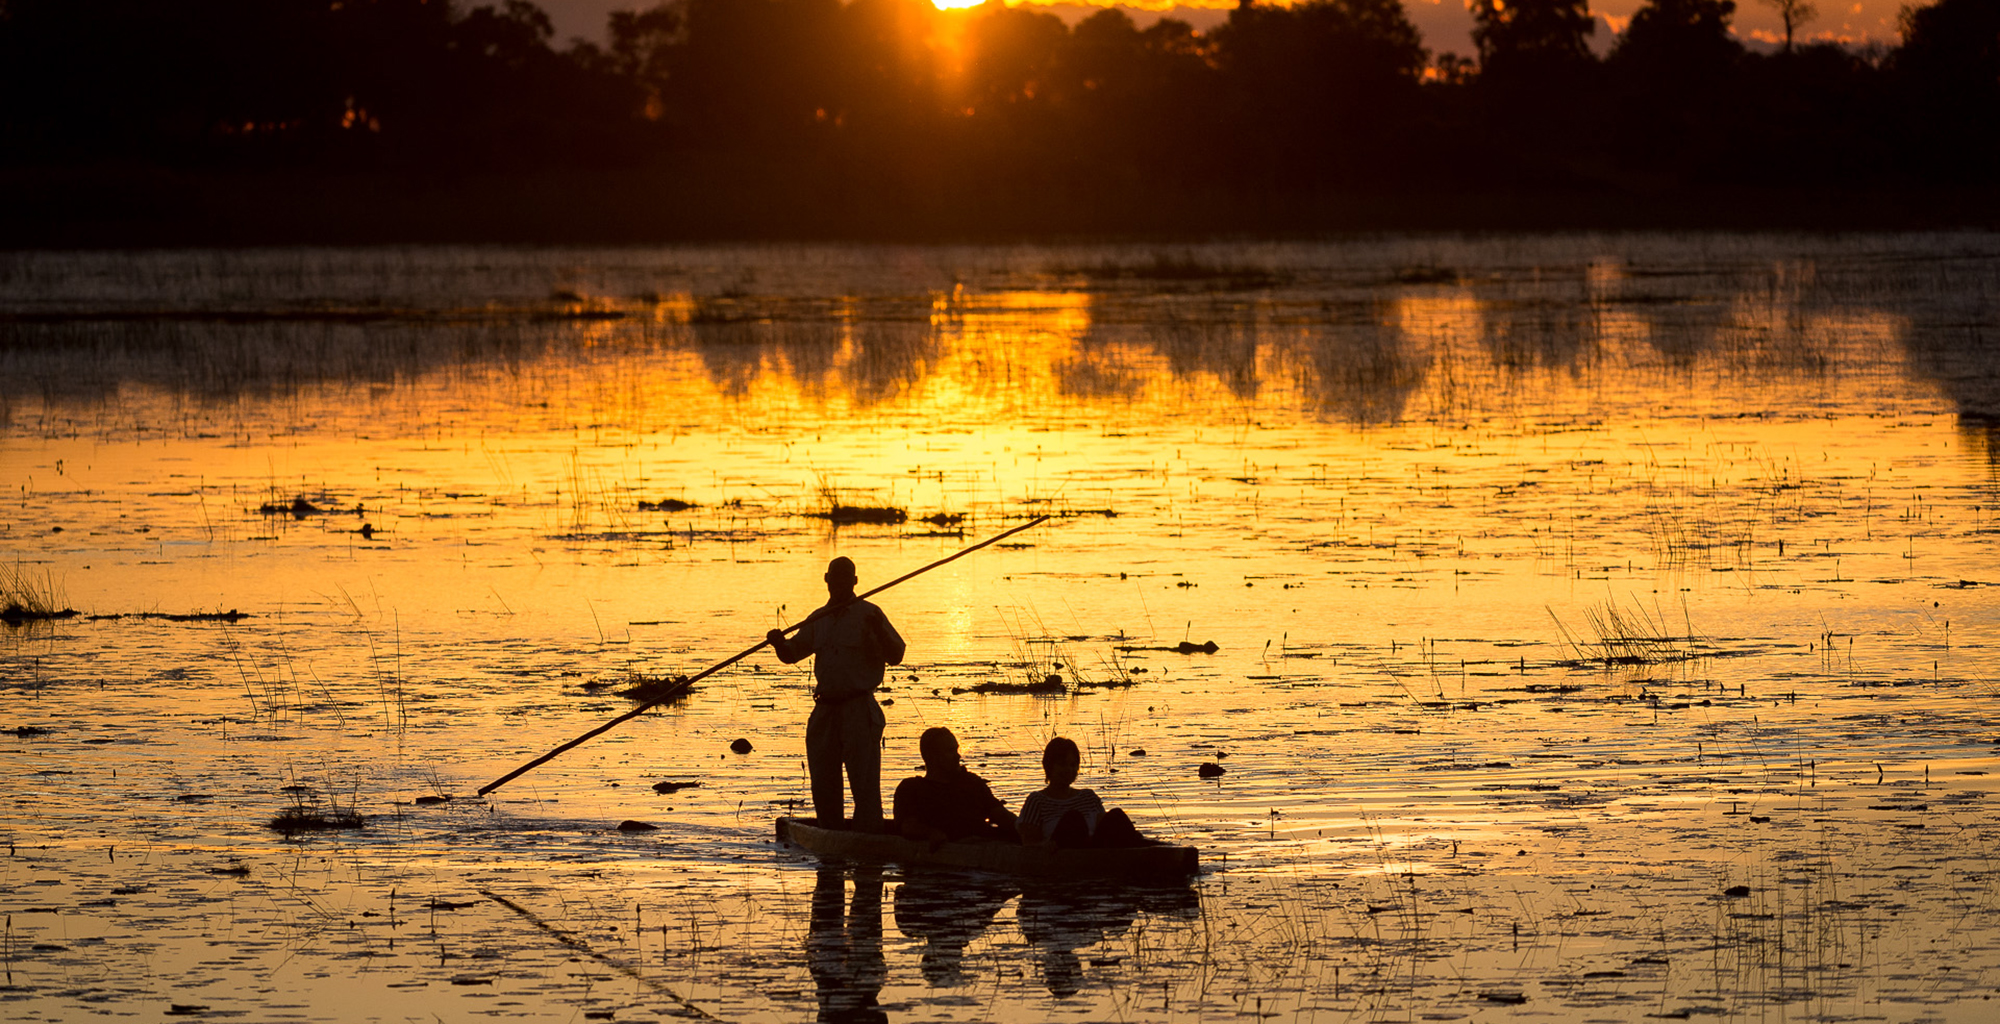 Botswana-Okavango-Delta-Rowing-Sunset